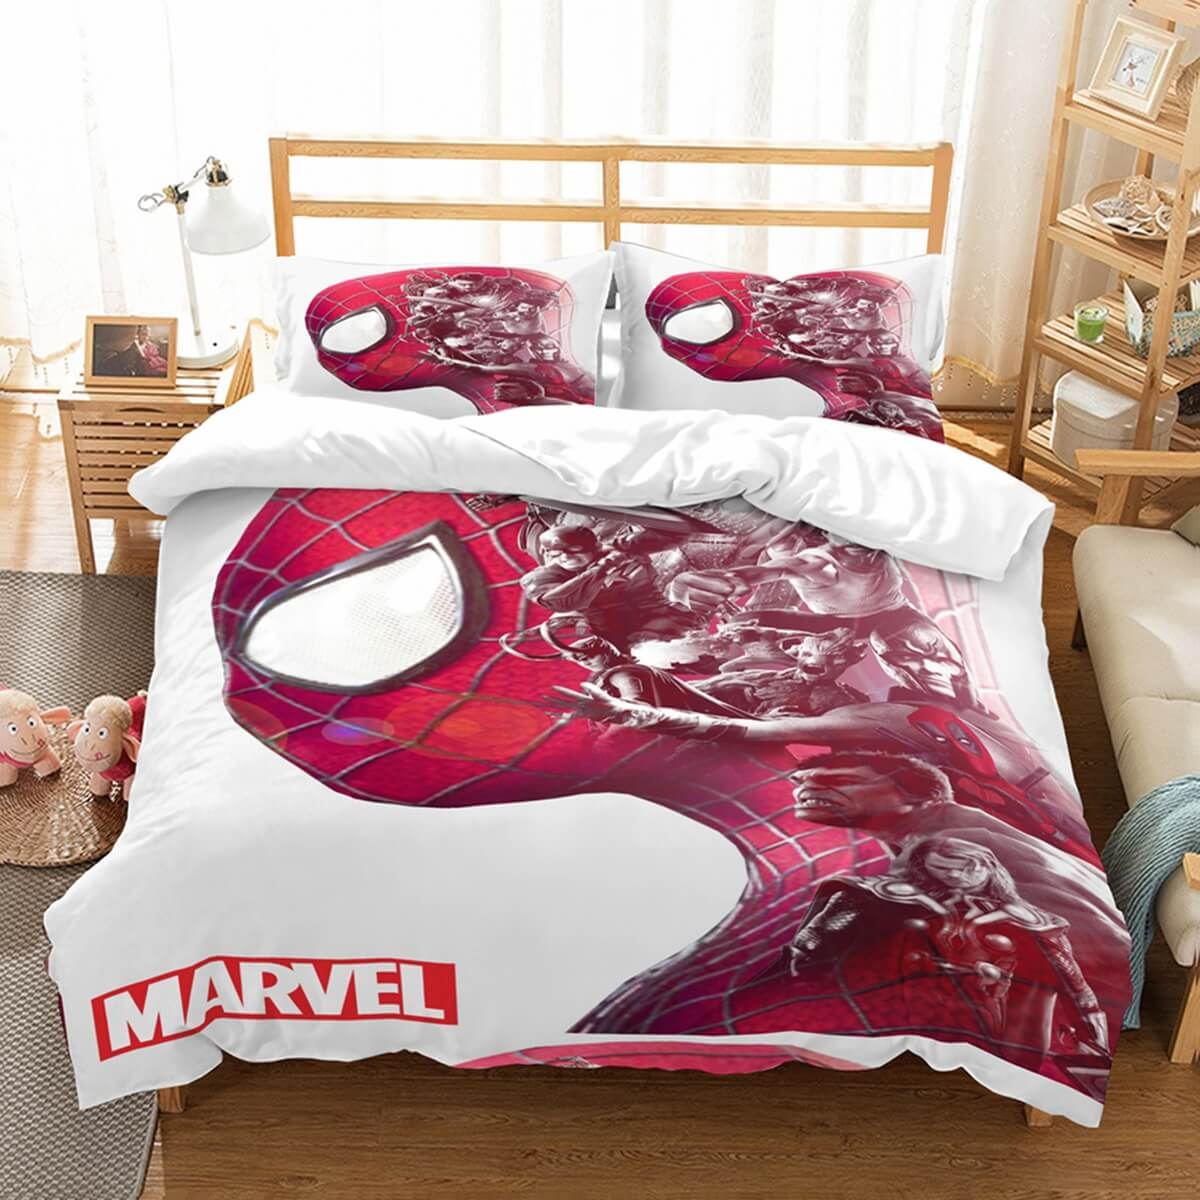 3D Customize Marvel Comics Bedding Set Duvet Cover Set Bedroom Set Bedlinen